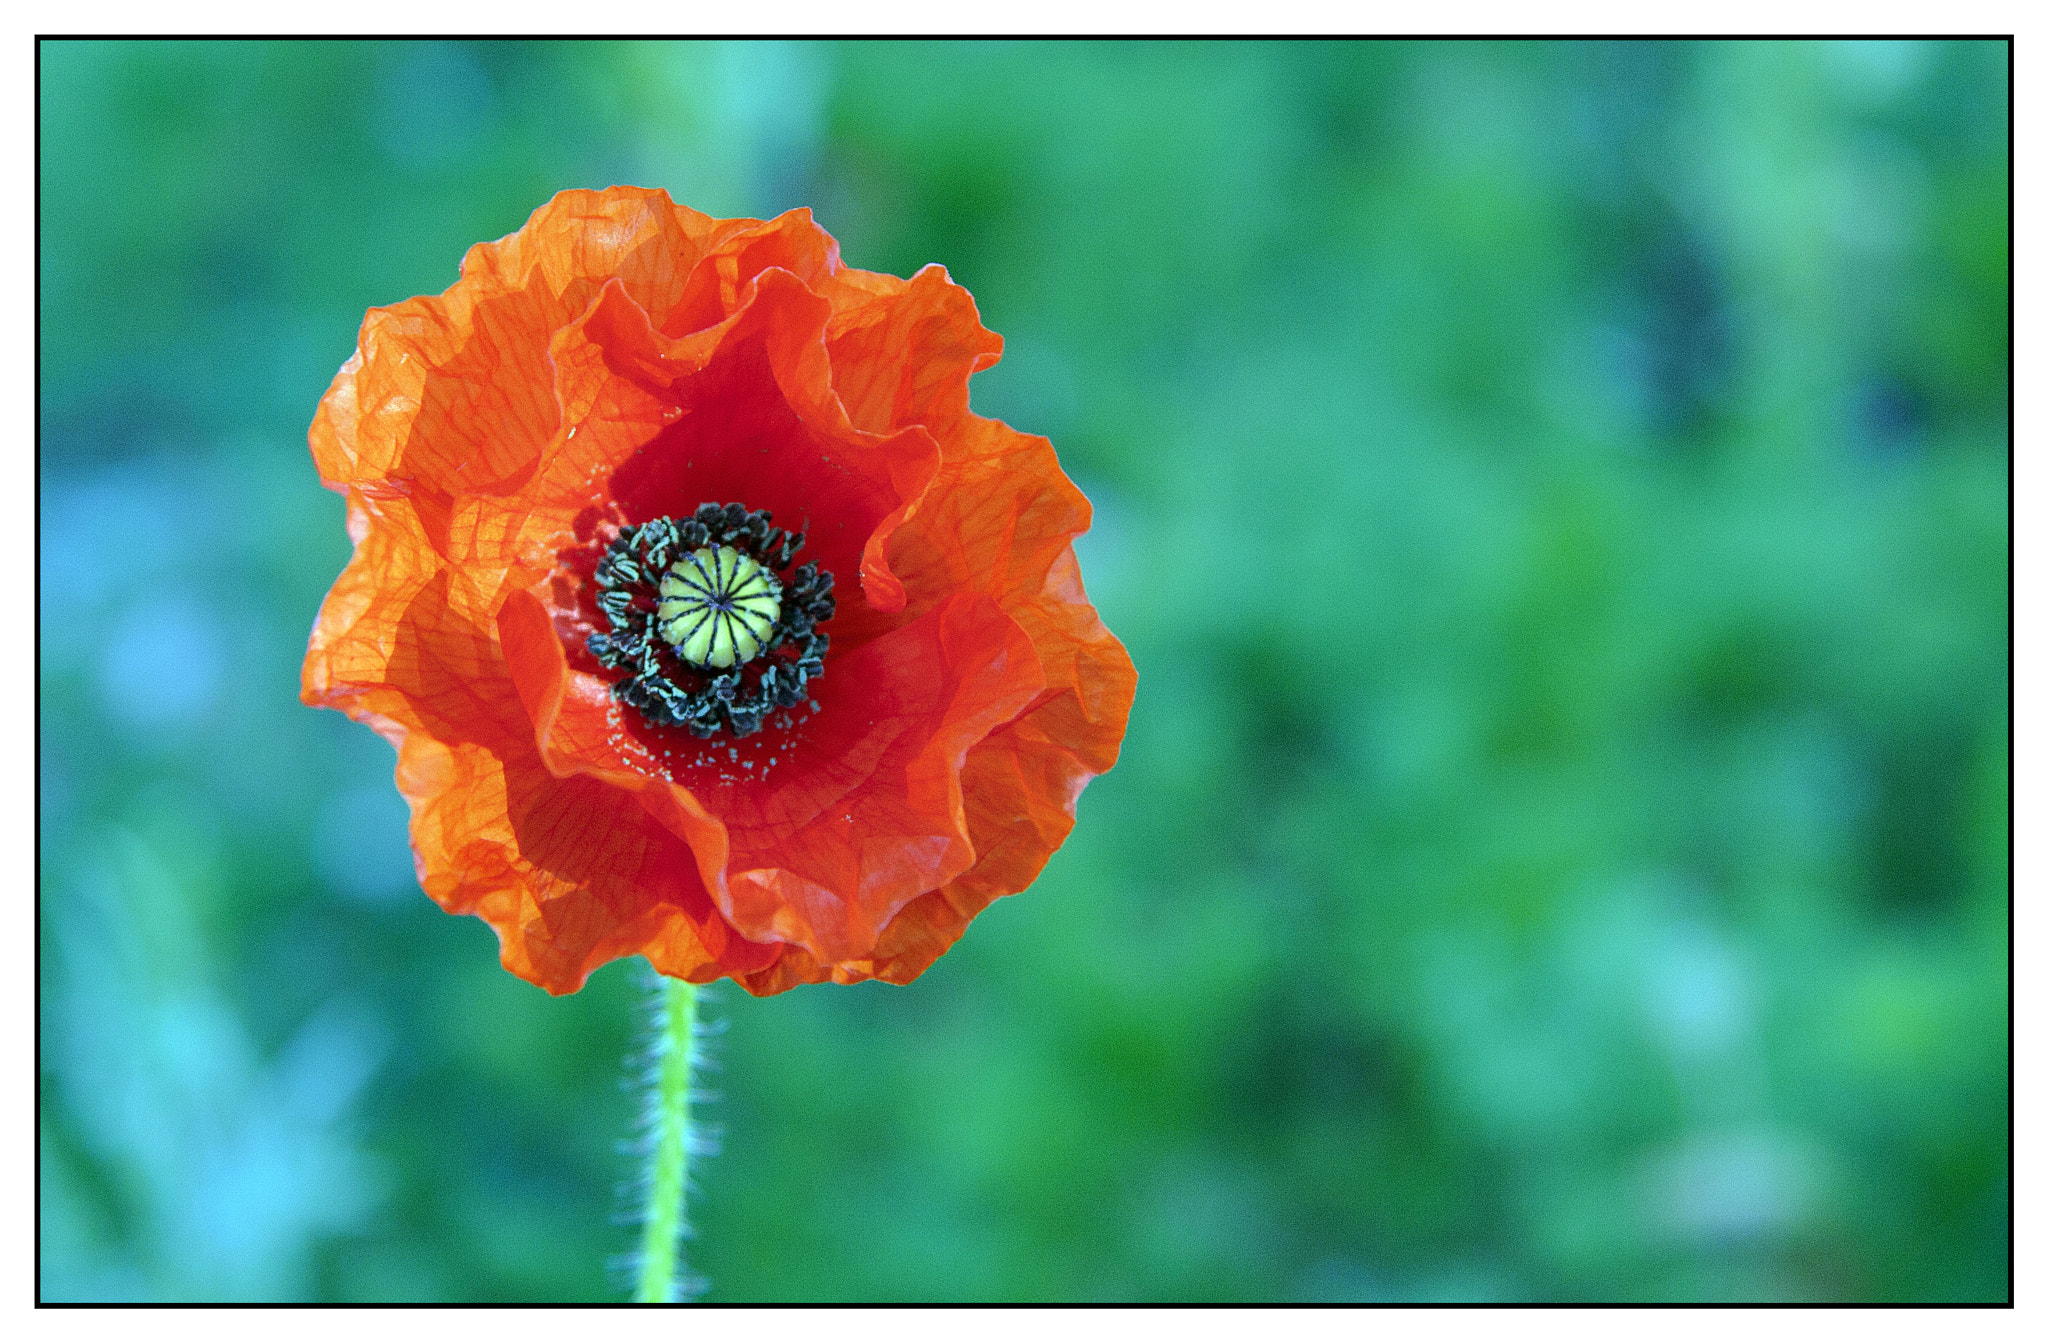 Photograph Poppy by Anoup Puri on 500px